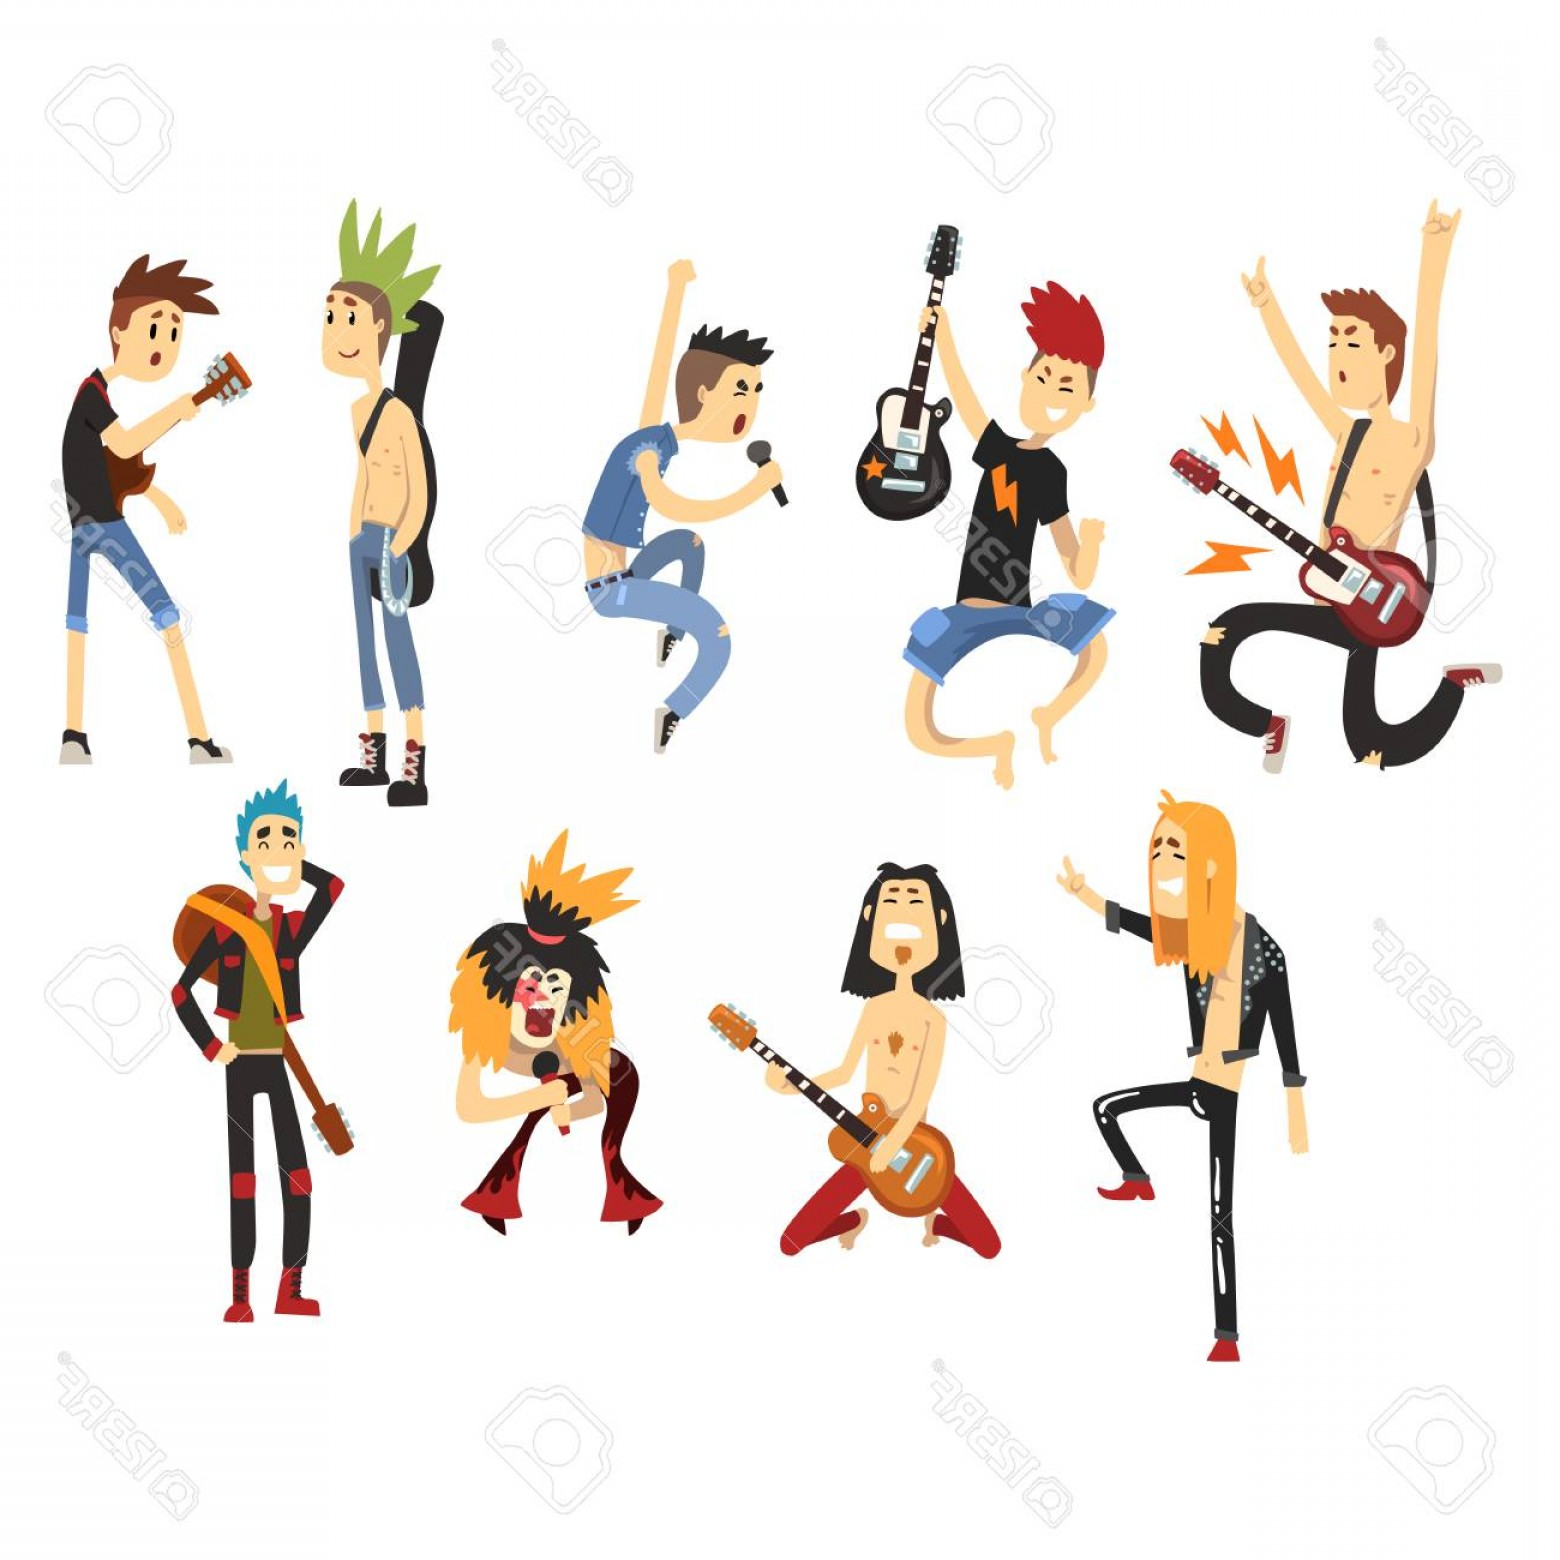 Singers Vector Art: Photostock Vector Cartoon Rock Artists Characters Singing And Playing On Musical Instruments Guys With Colorful Haircu